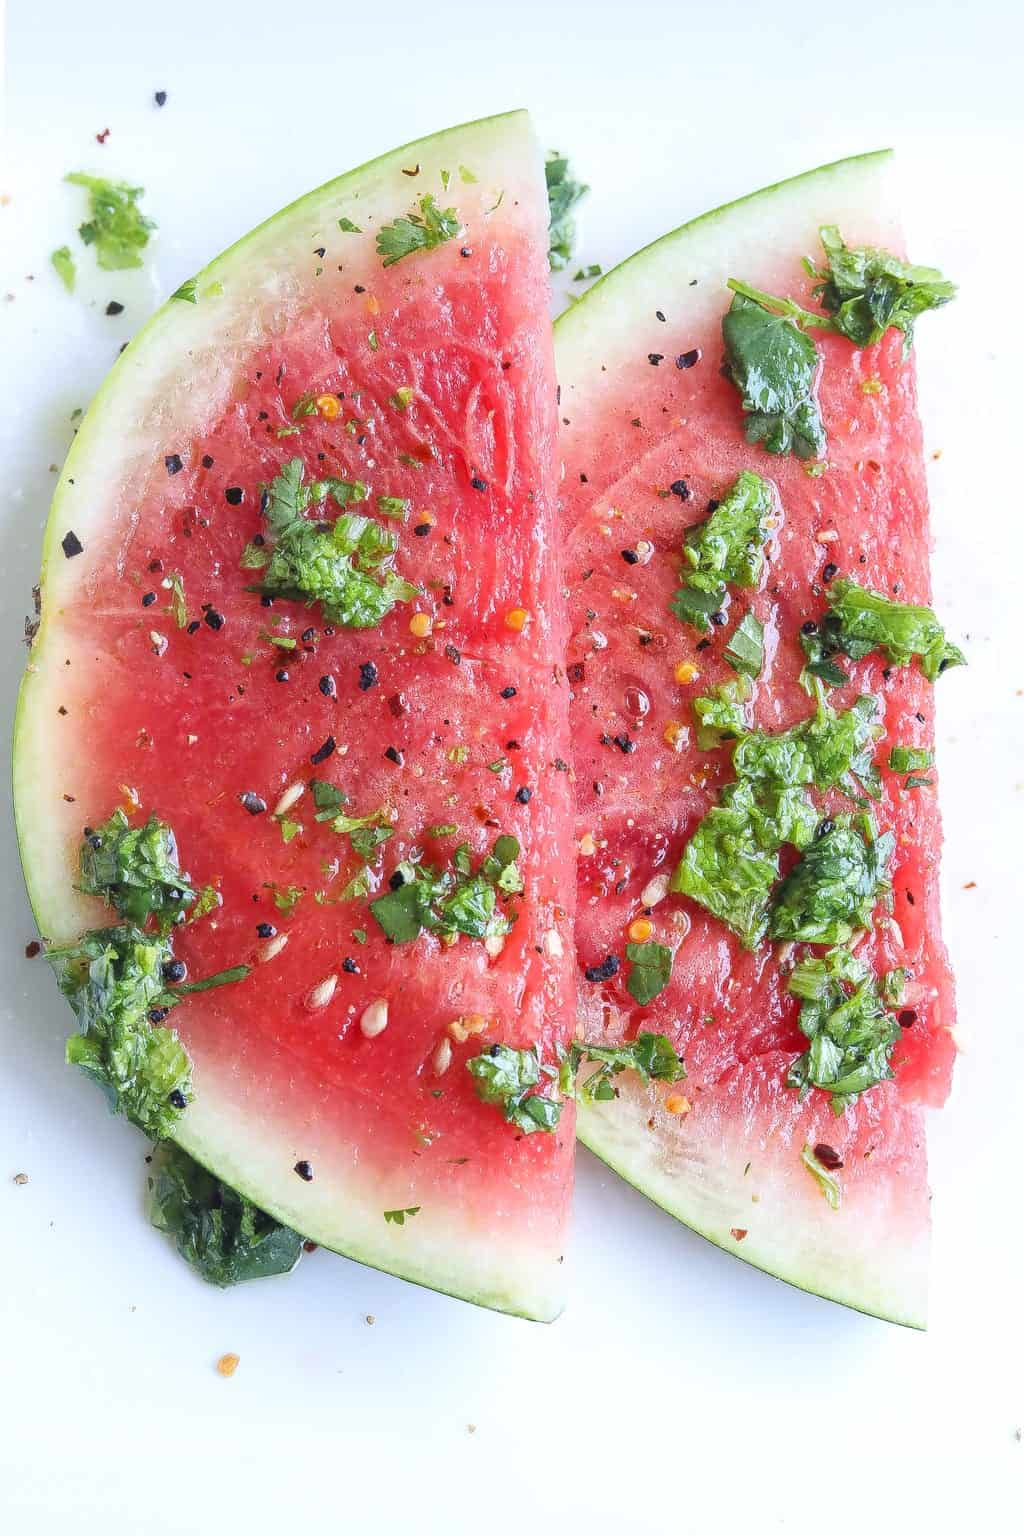 watermelon salad on a plate topped with mustard green chimichurri sauce